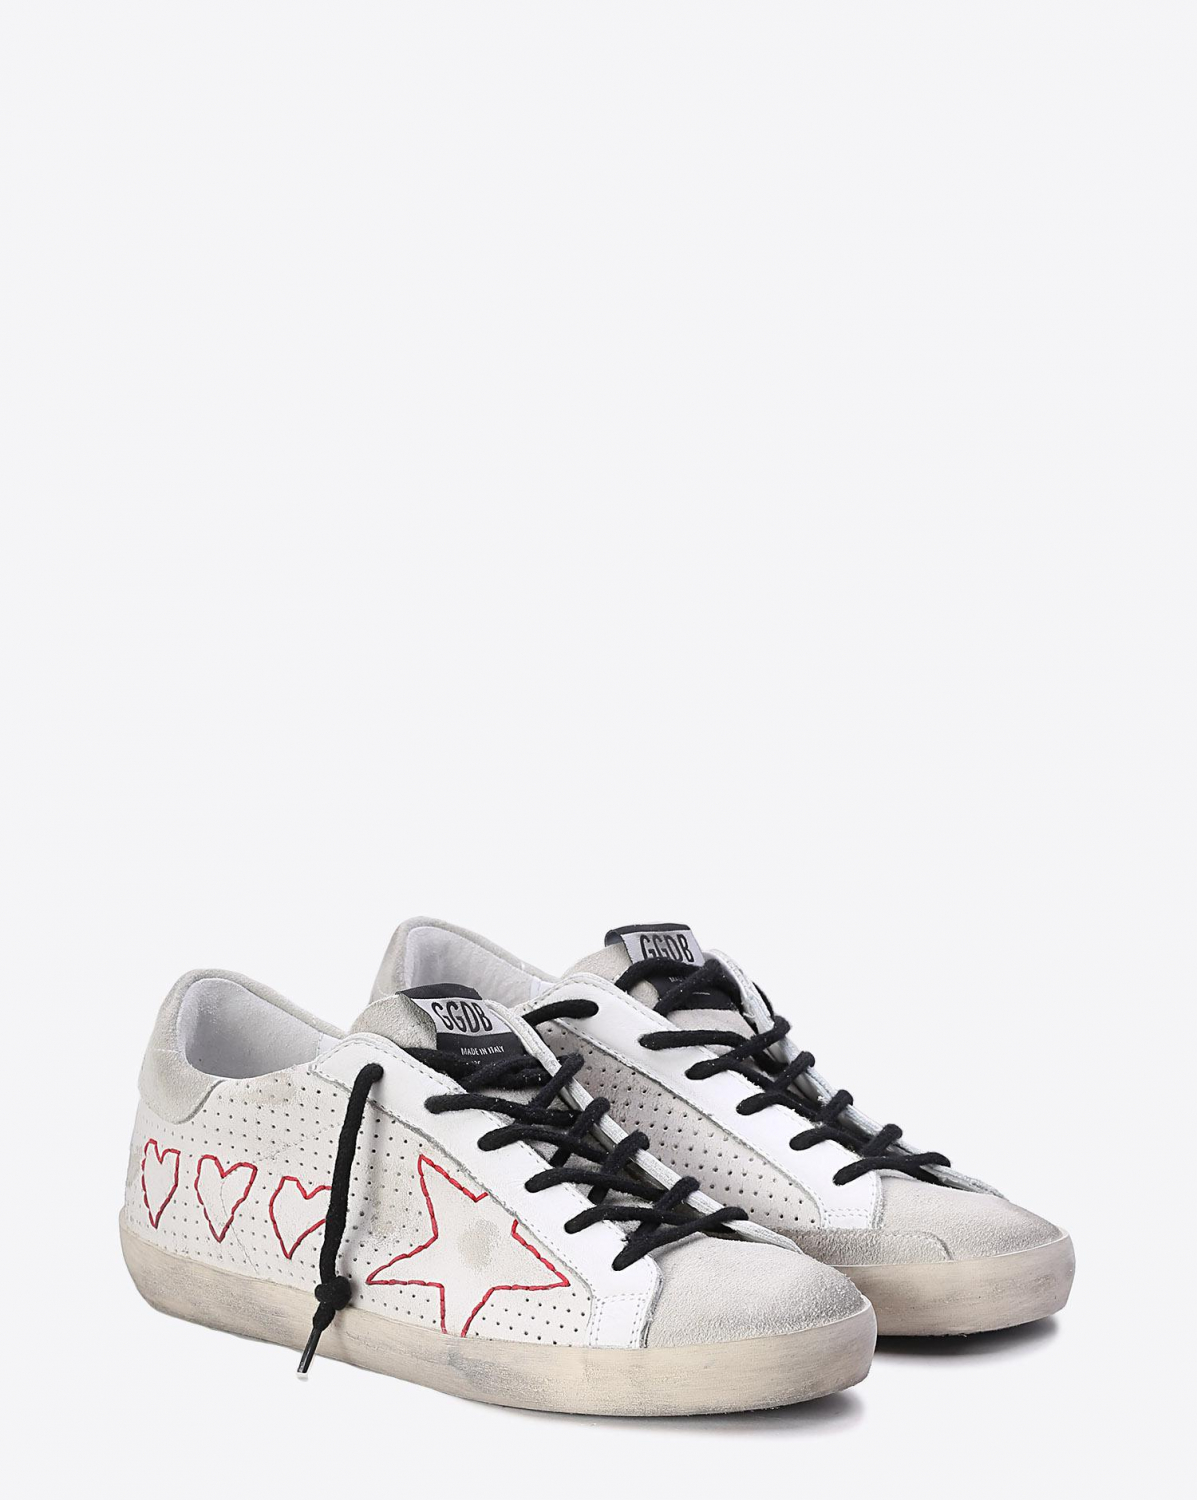 Golden Goose Woman Collection Sneakers Superstar White Leather - 3 Hearts And 1 Star